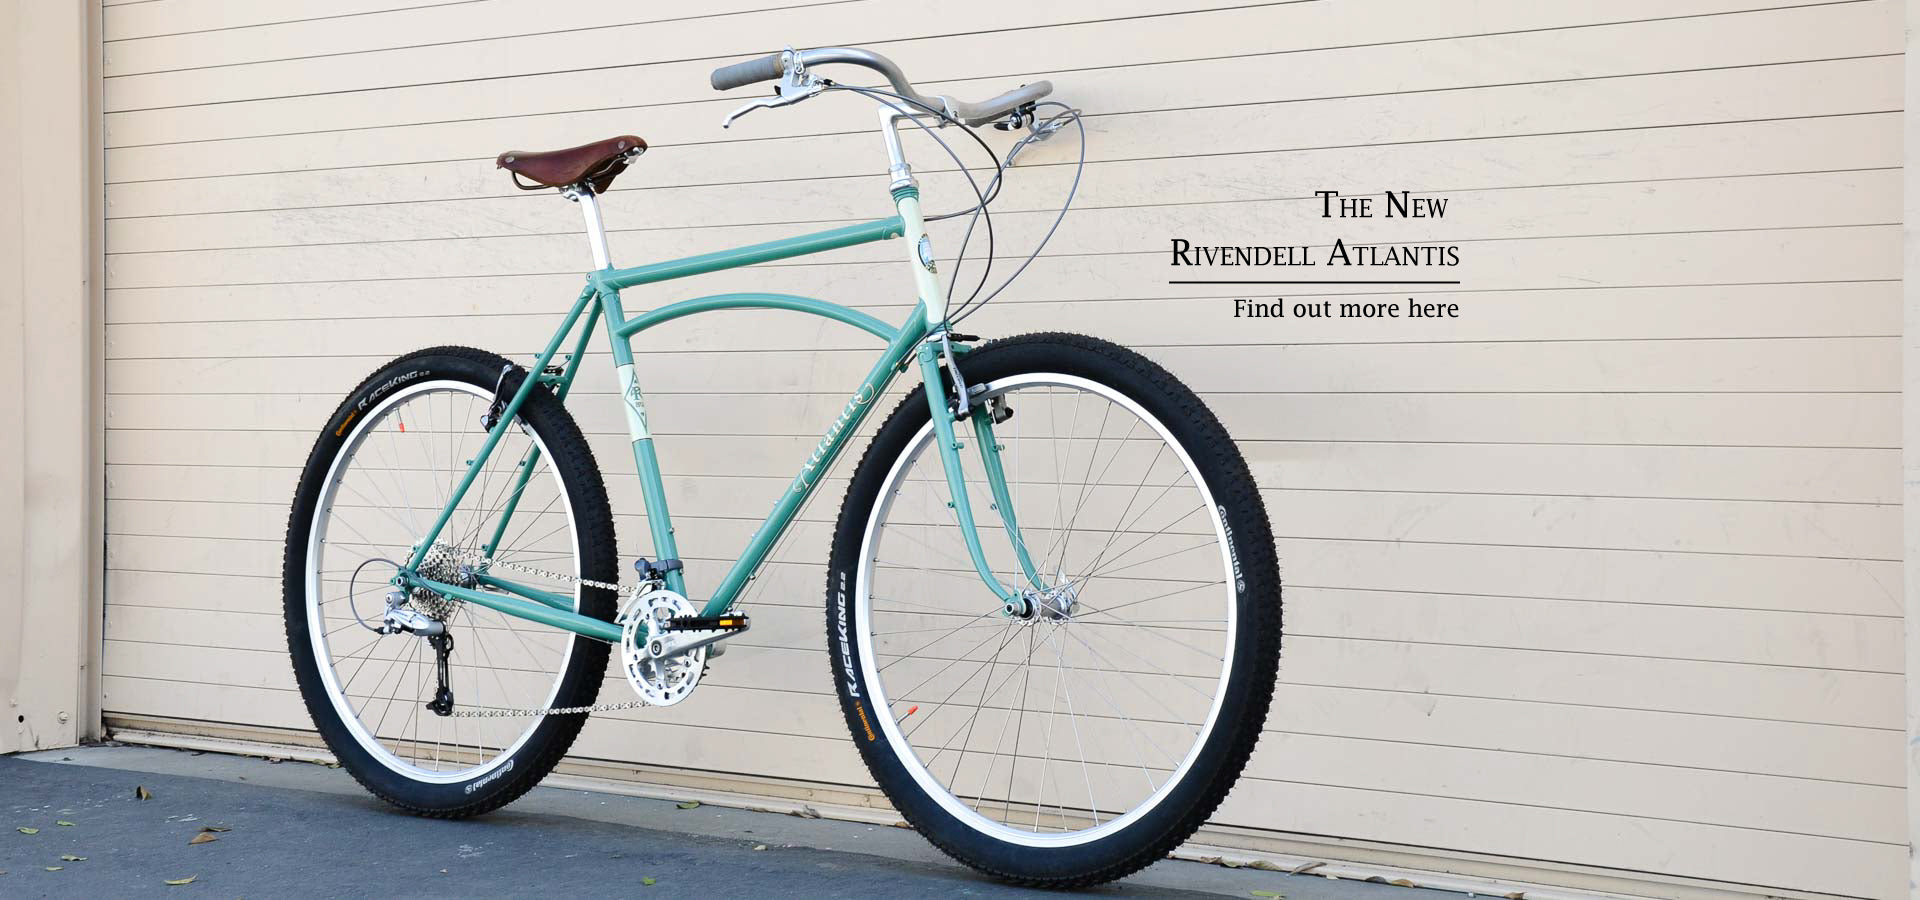 43f7ace8d Rivendell Bicycle Works - Lugged Steel and Custom Bikes